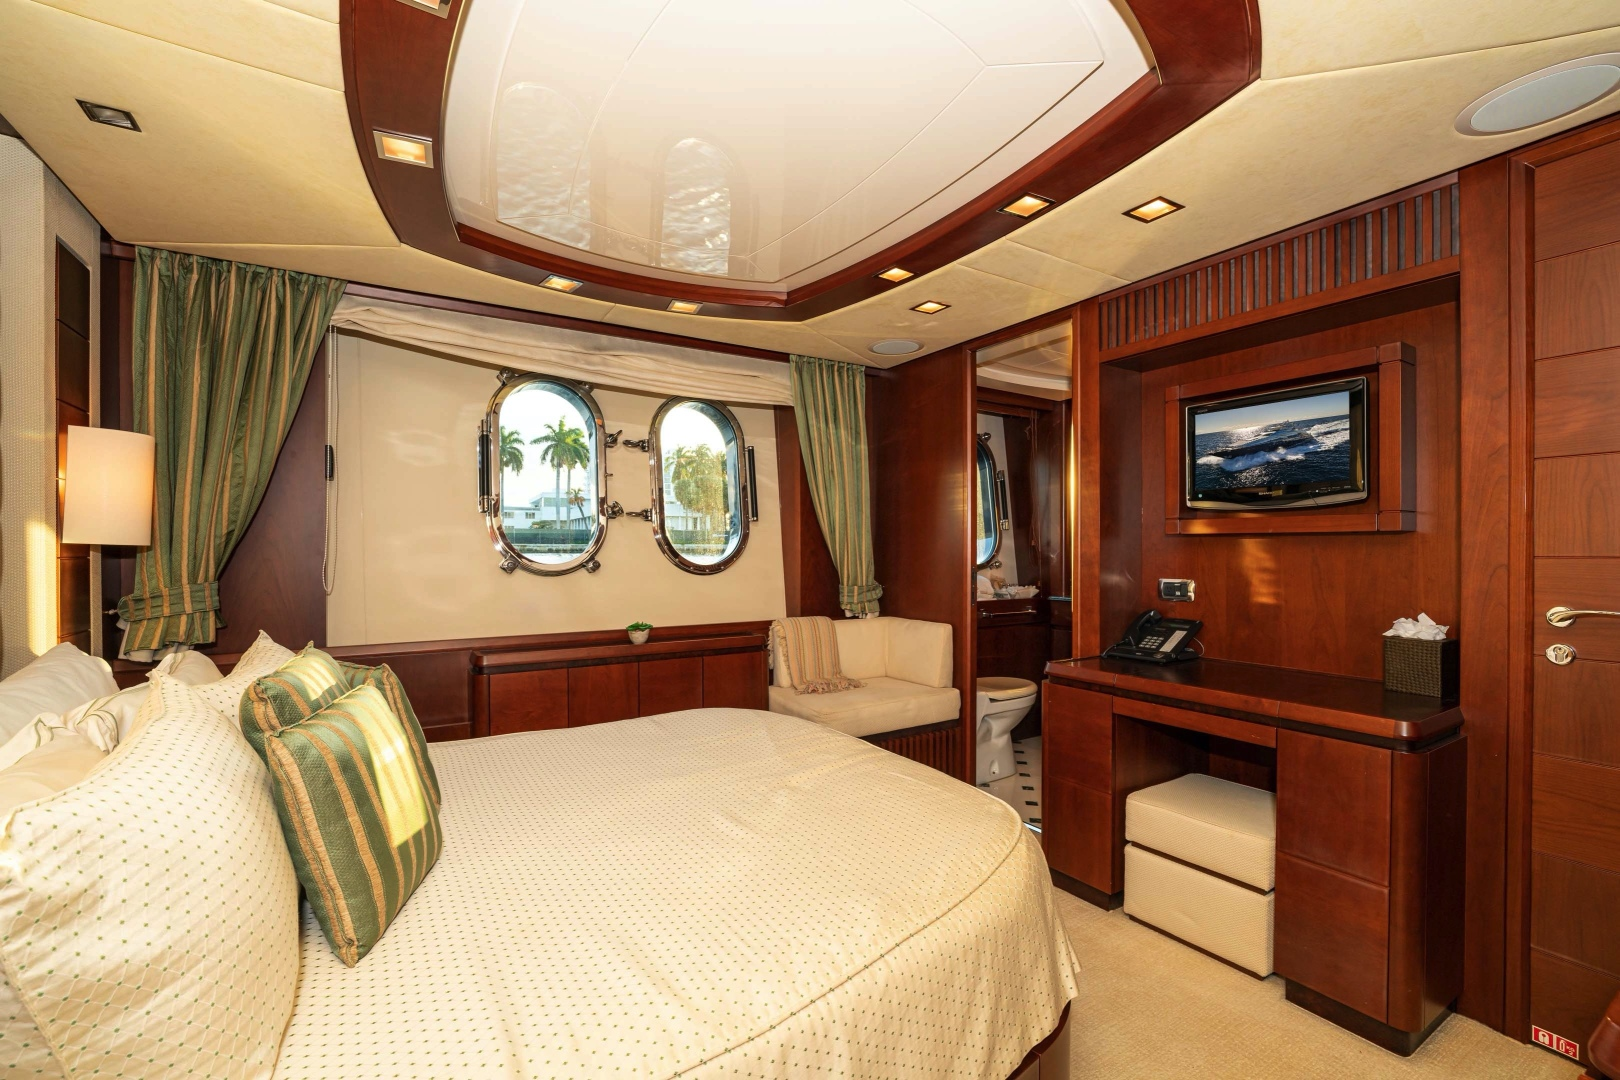 Azimut-2007 2008-VIVERE Palm Beach-Florida-United States-Queen Guest Stateroom (Stbd side)-1623923   Thumbnail